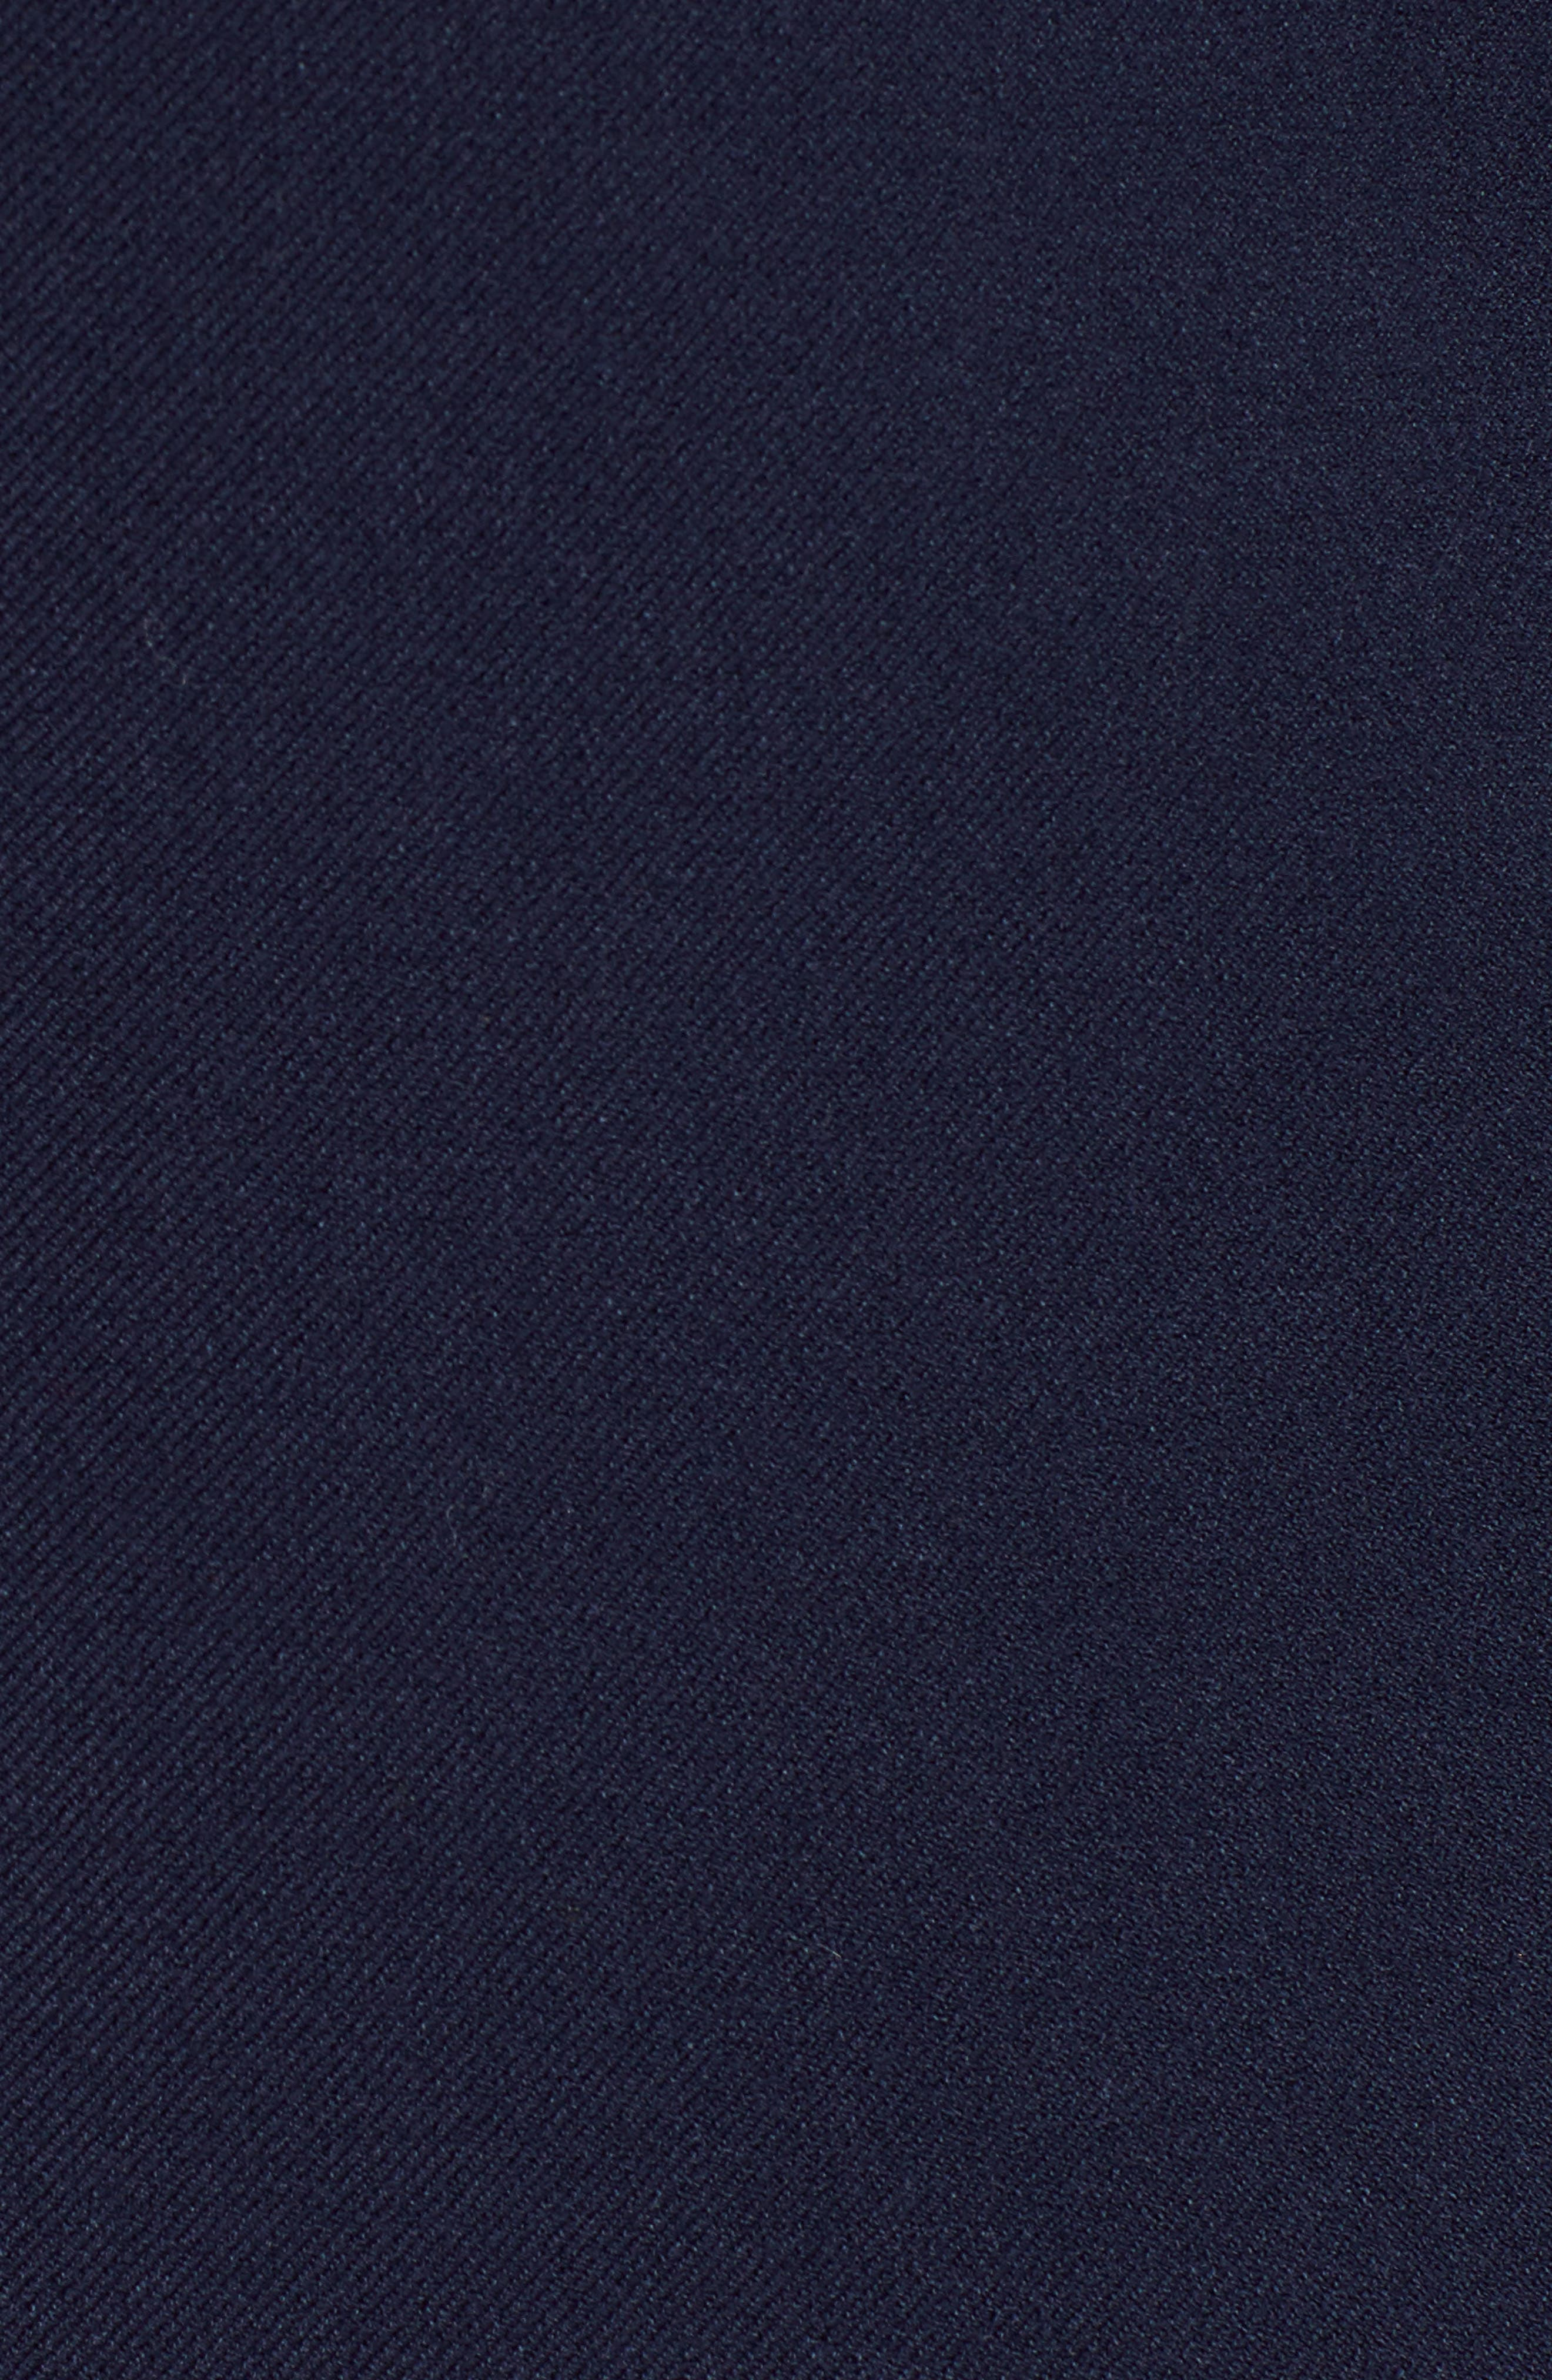 x Atlantic-Pacific Menswear Double Breasted Blazer,                             Alternate thumbnail 8, color,                             NAVY